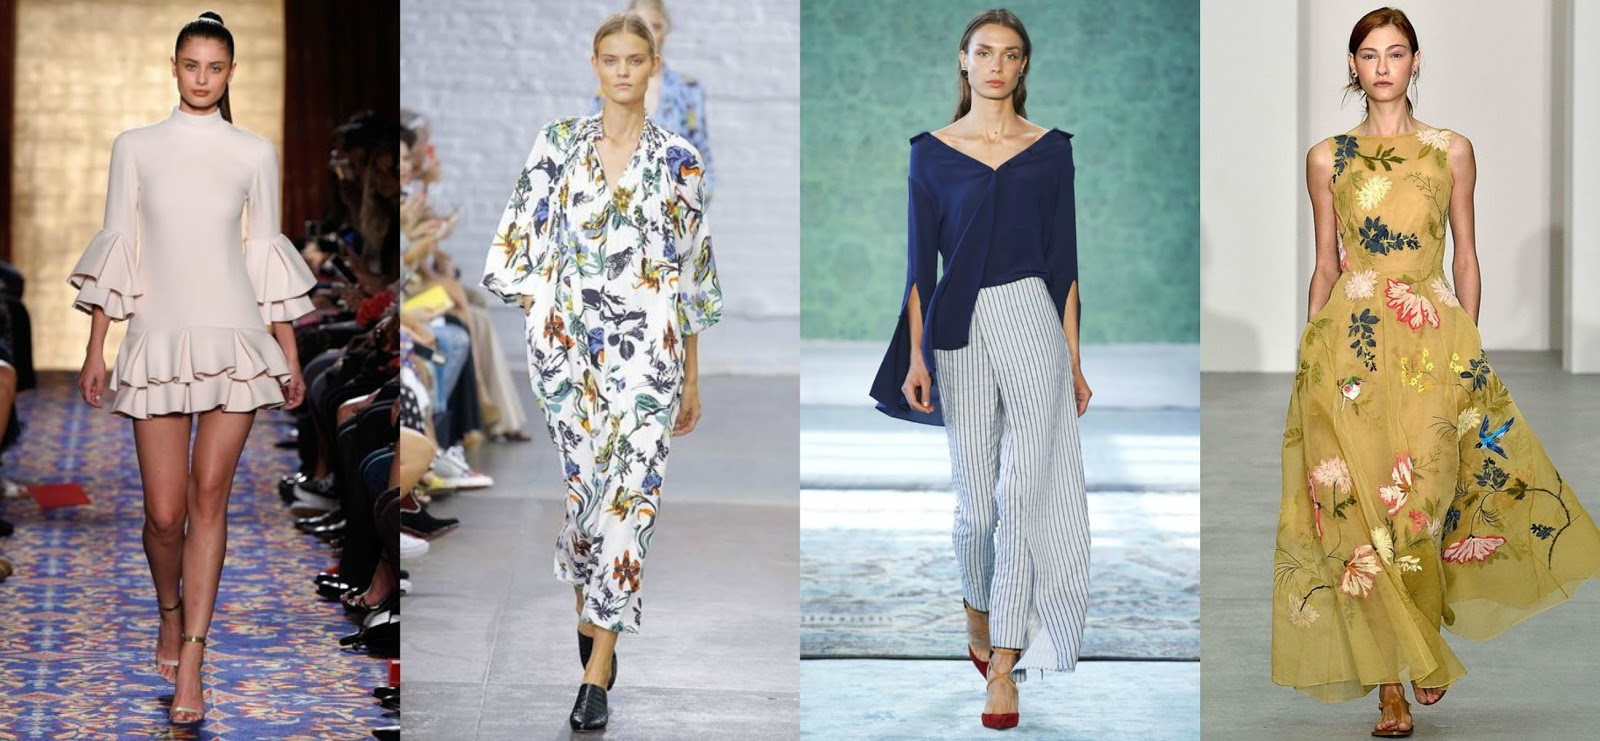 Spring/Summer 2017 Fashion Trends To Know